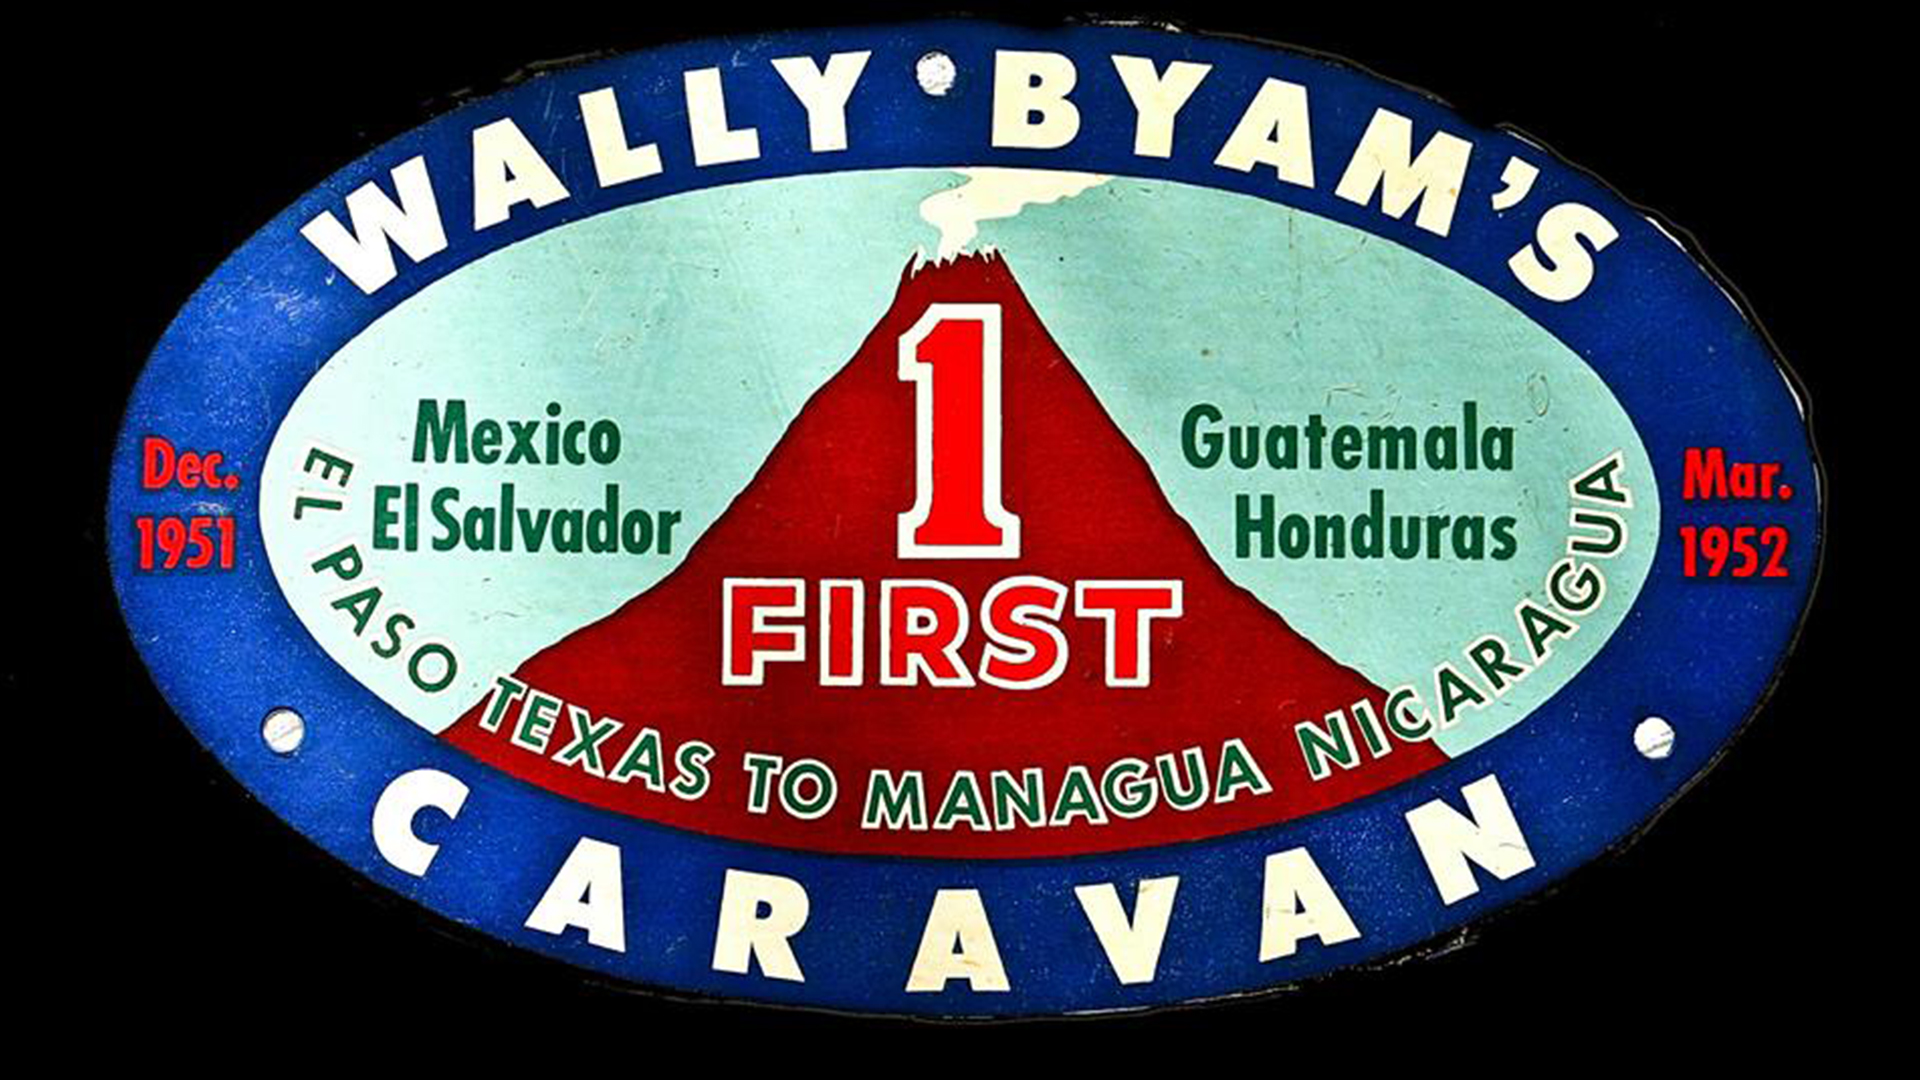 First-Caravan-Badge-Mexico-and-Central-America